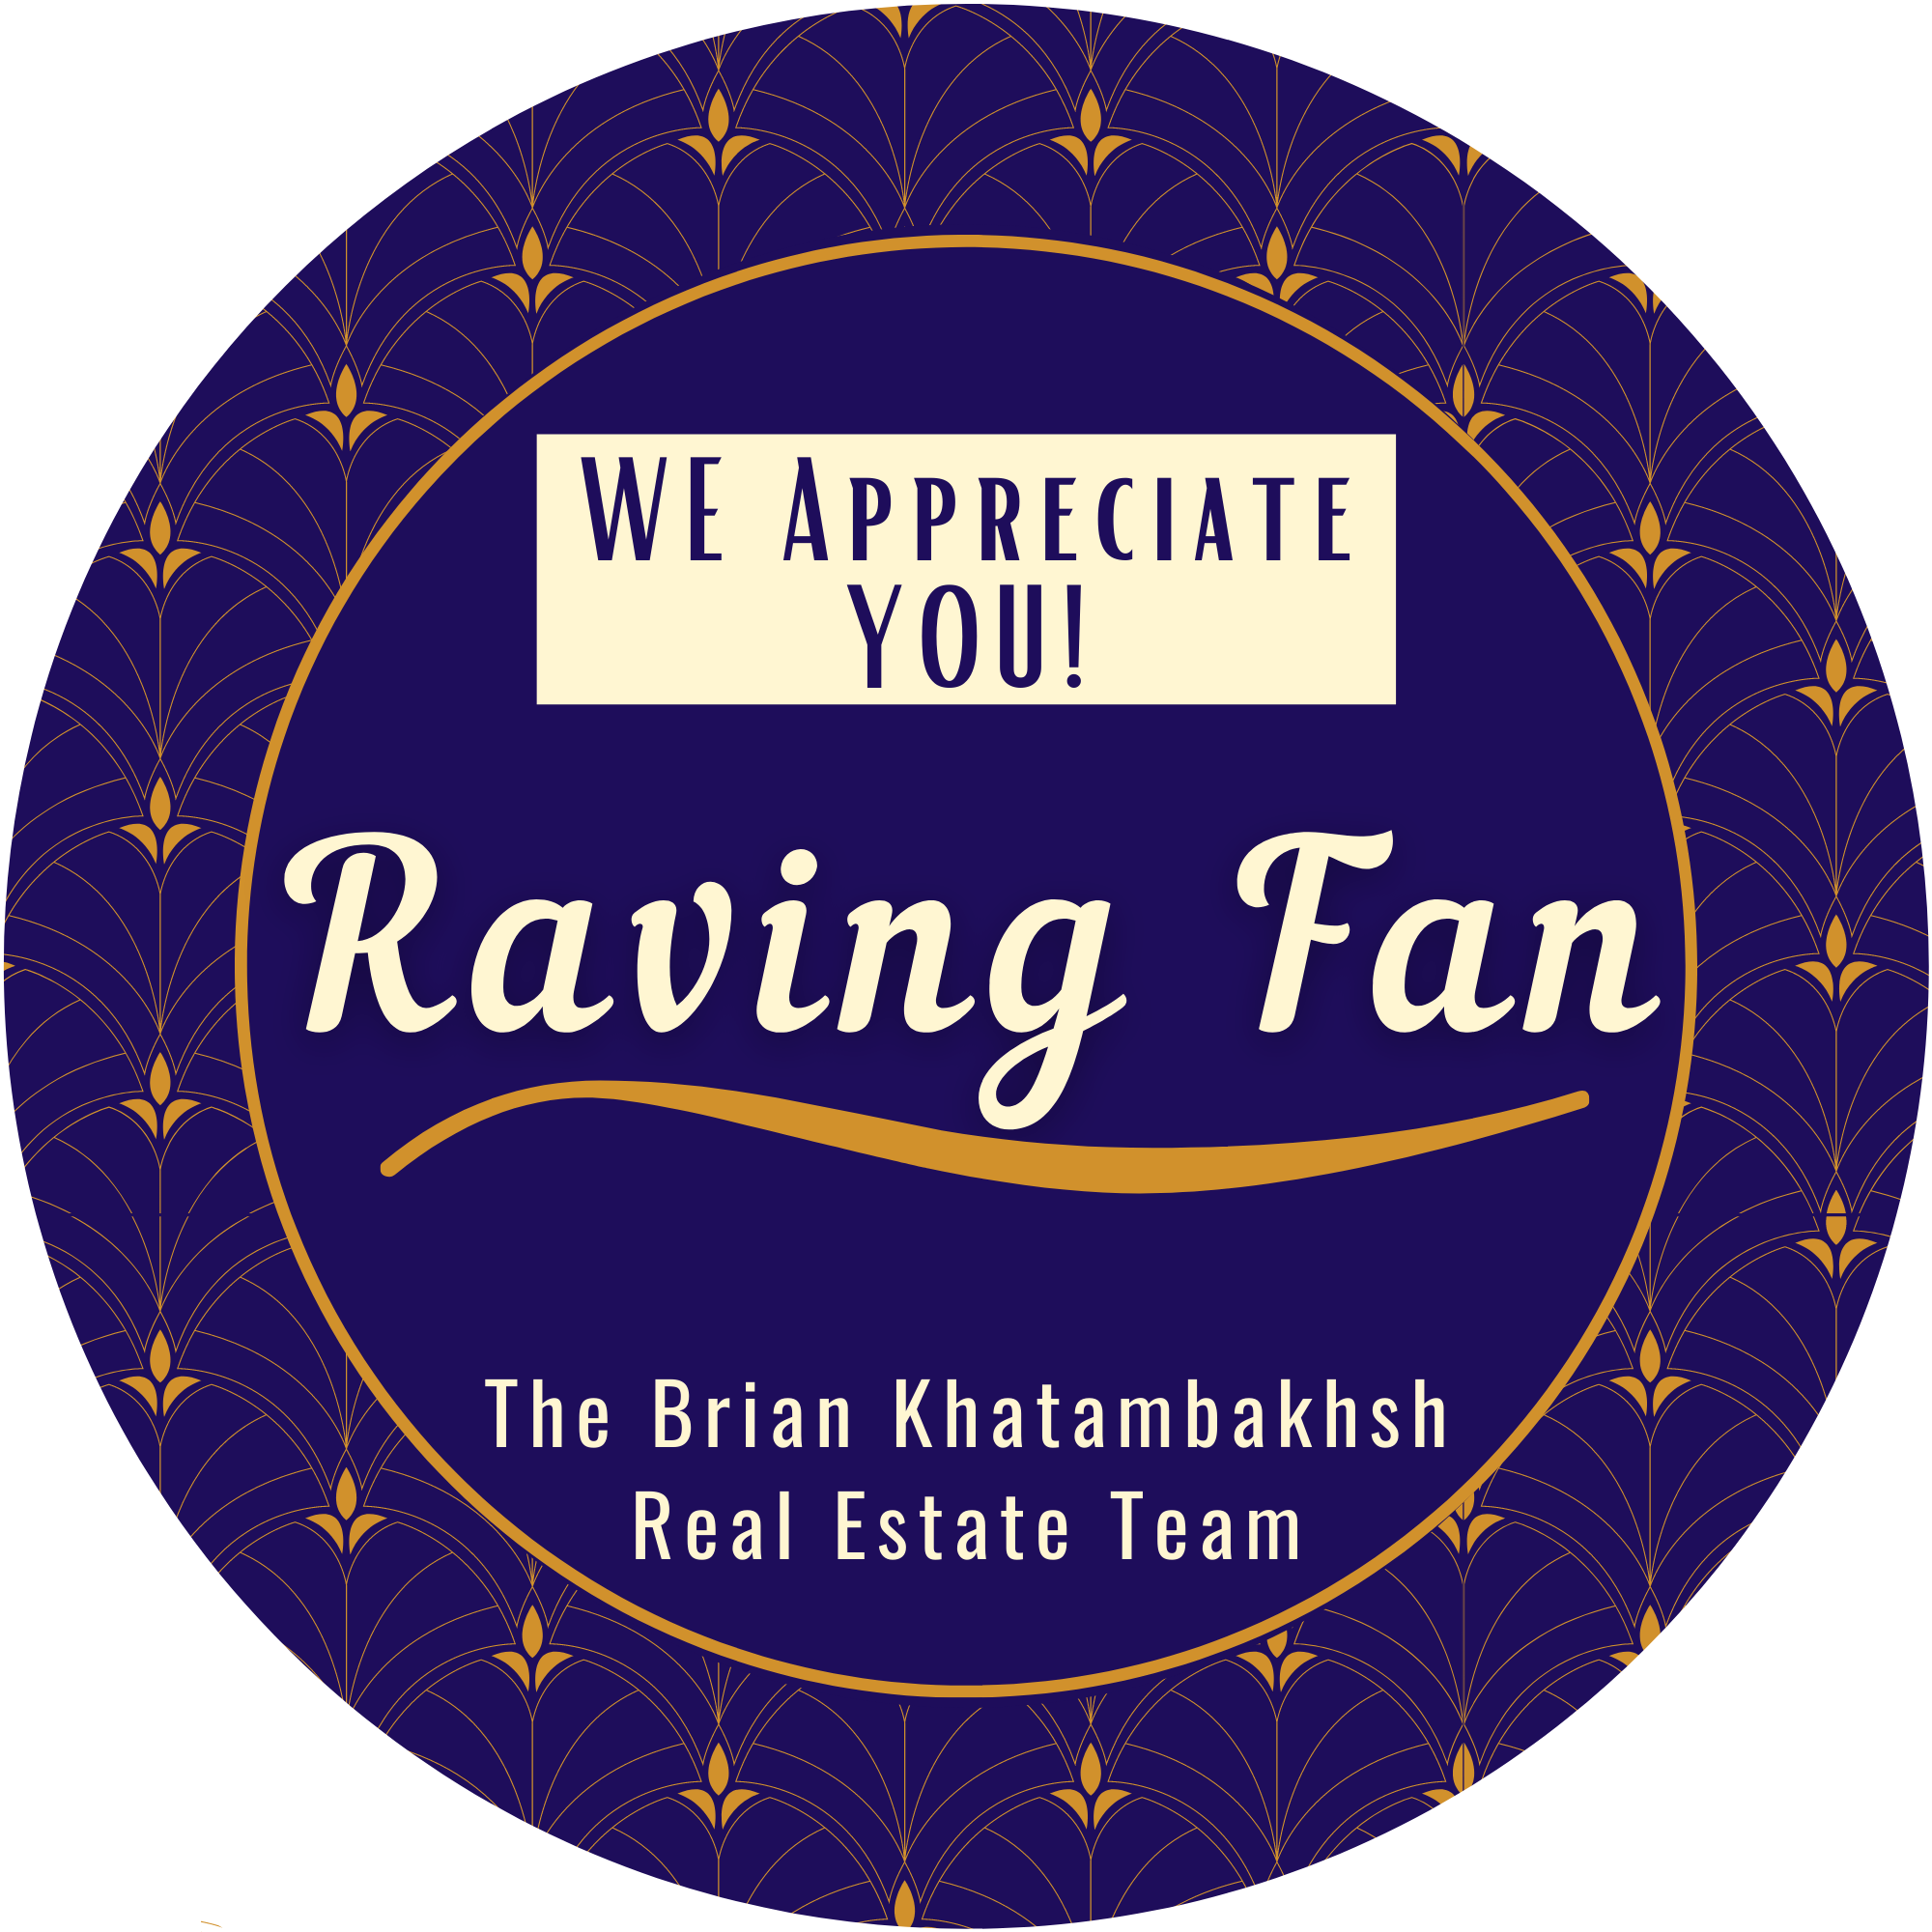 Raving fan round label 2.5_ (3).png